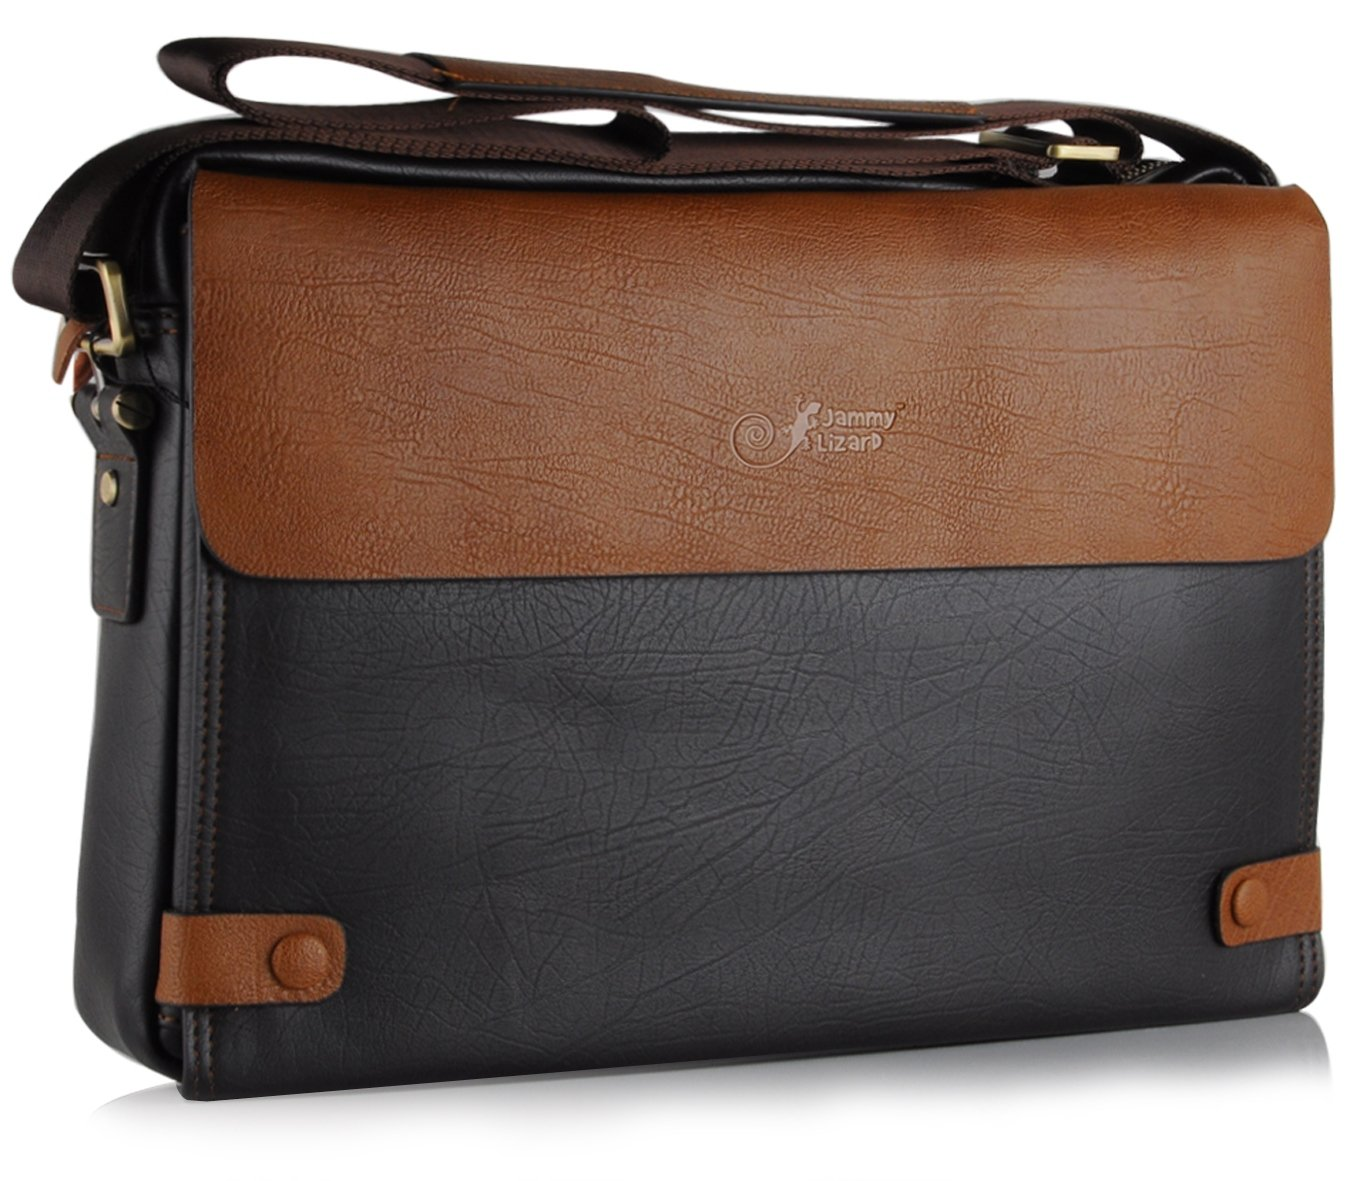 Brown Leather Laptop Travel Bag Case Cover Satchel forCustomer reviews